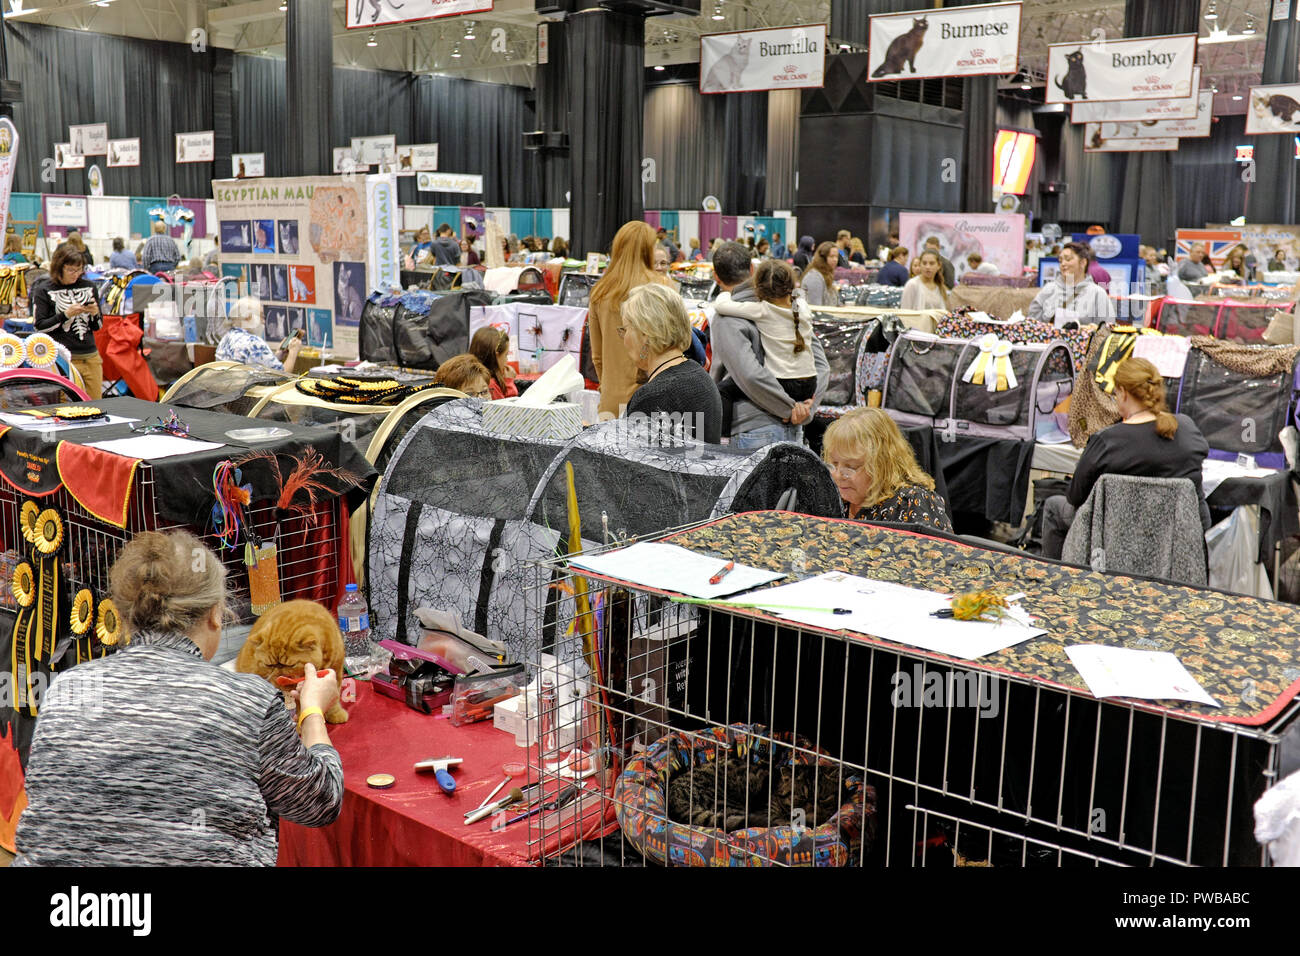 Cleveland, Ohio, USA, 14th Oct, 2018.  Participants and spectators at the 2018 Cat Fancier's Association International Cat Show create a hive of energy in the Cleveland IX Center.  Rows of cat show benching cages are organized by breed as signs hanging from the ceiling give show participants, and visitors, visual cues as to where certain breeds are being prepped for their competitions.  A cat owner feeds her cat in a benching area which is also used for grooming of her pedigreed feline.  With up to 1,000 pedigreed cats including up to 41 breeds, the competition is the largest of its kind in th - Stock Image